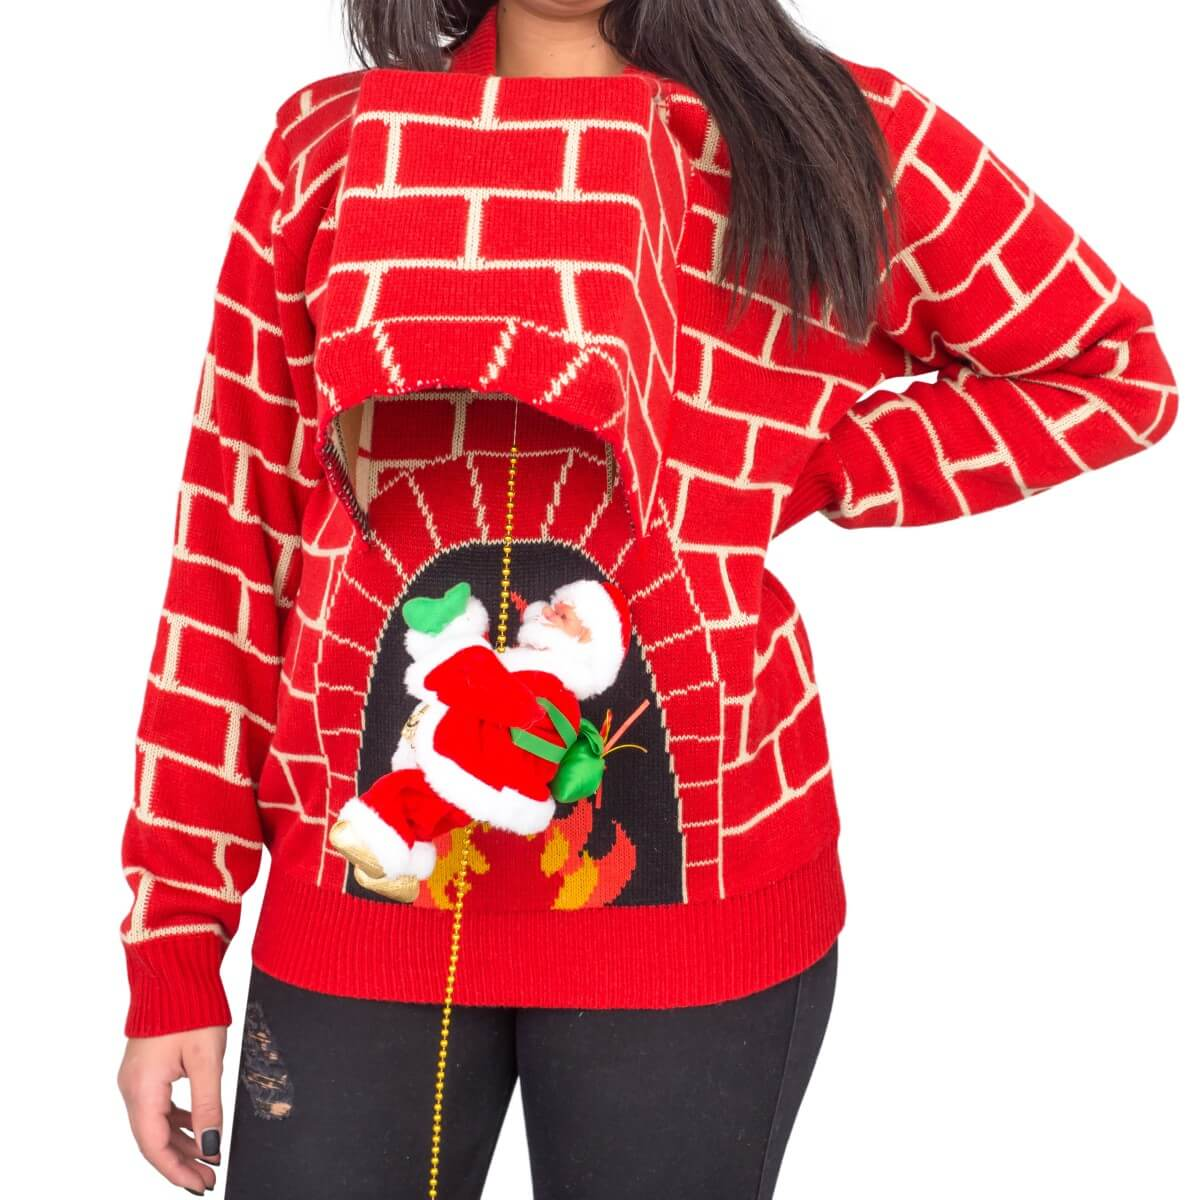 Women's Santa Claus 3D Chimney Climbing Ugly Christmas Sweater